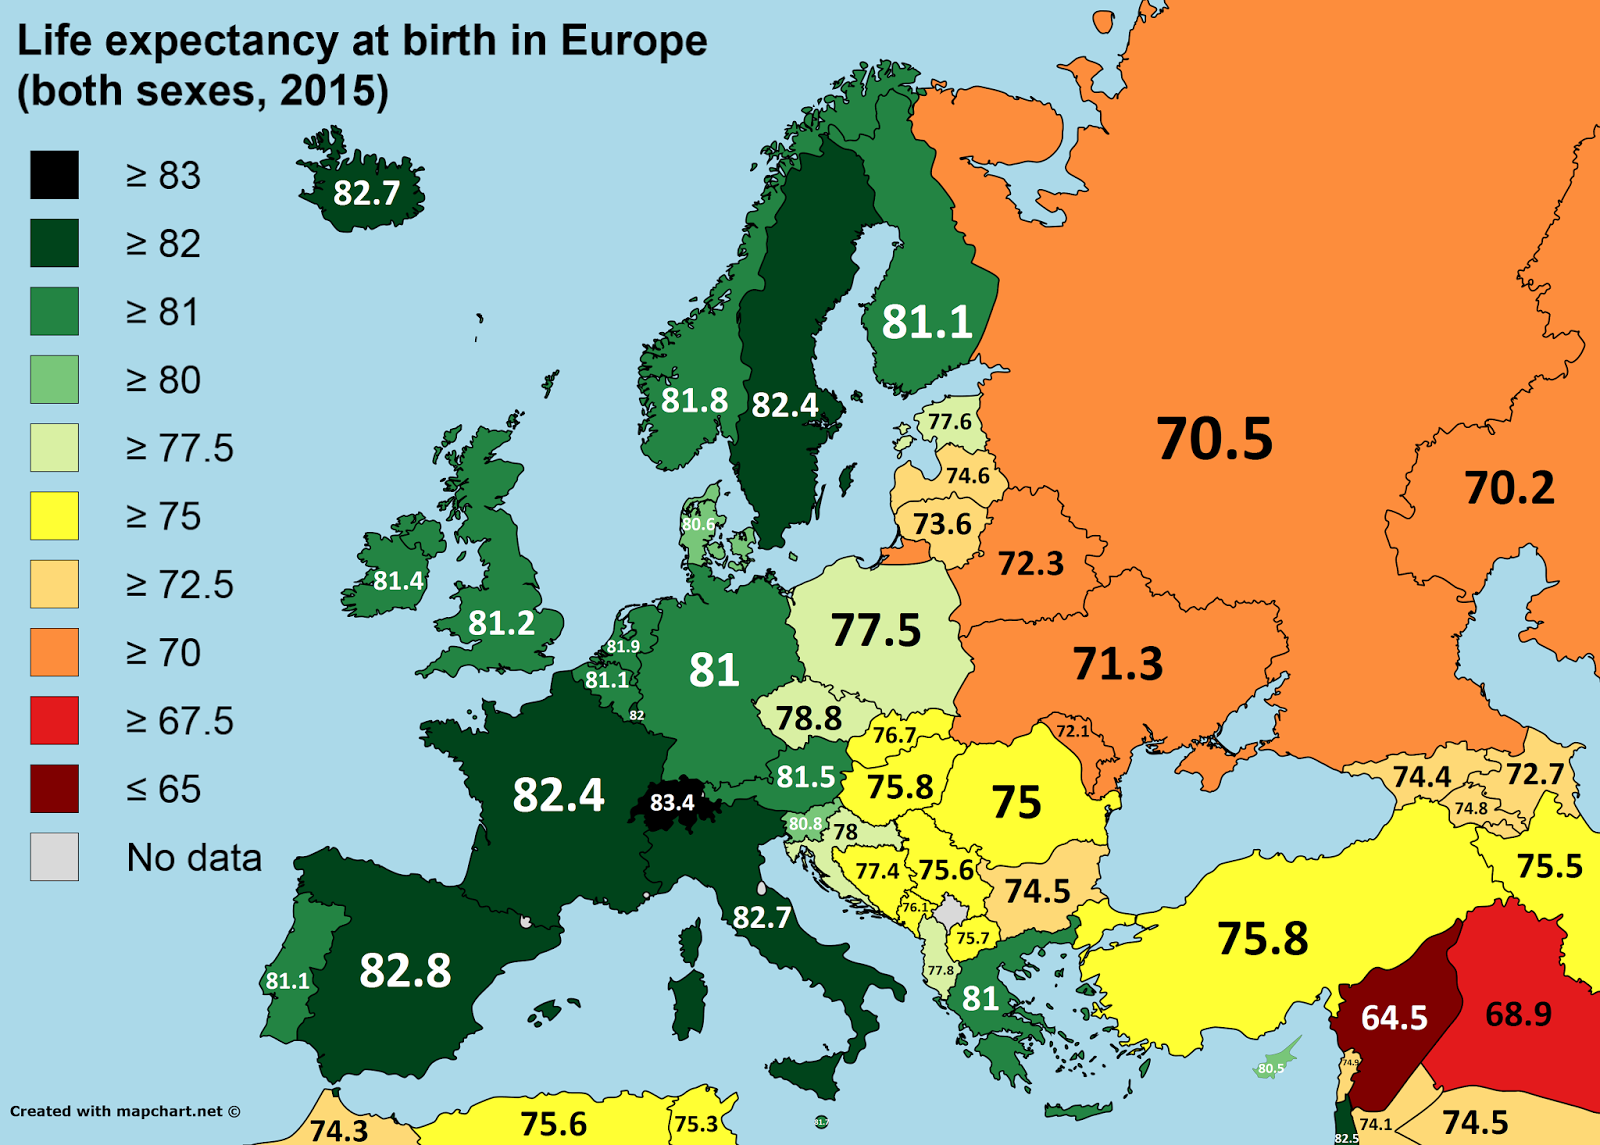 Life expectancy at birth in Europe (2015)